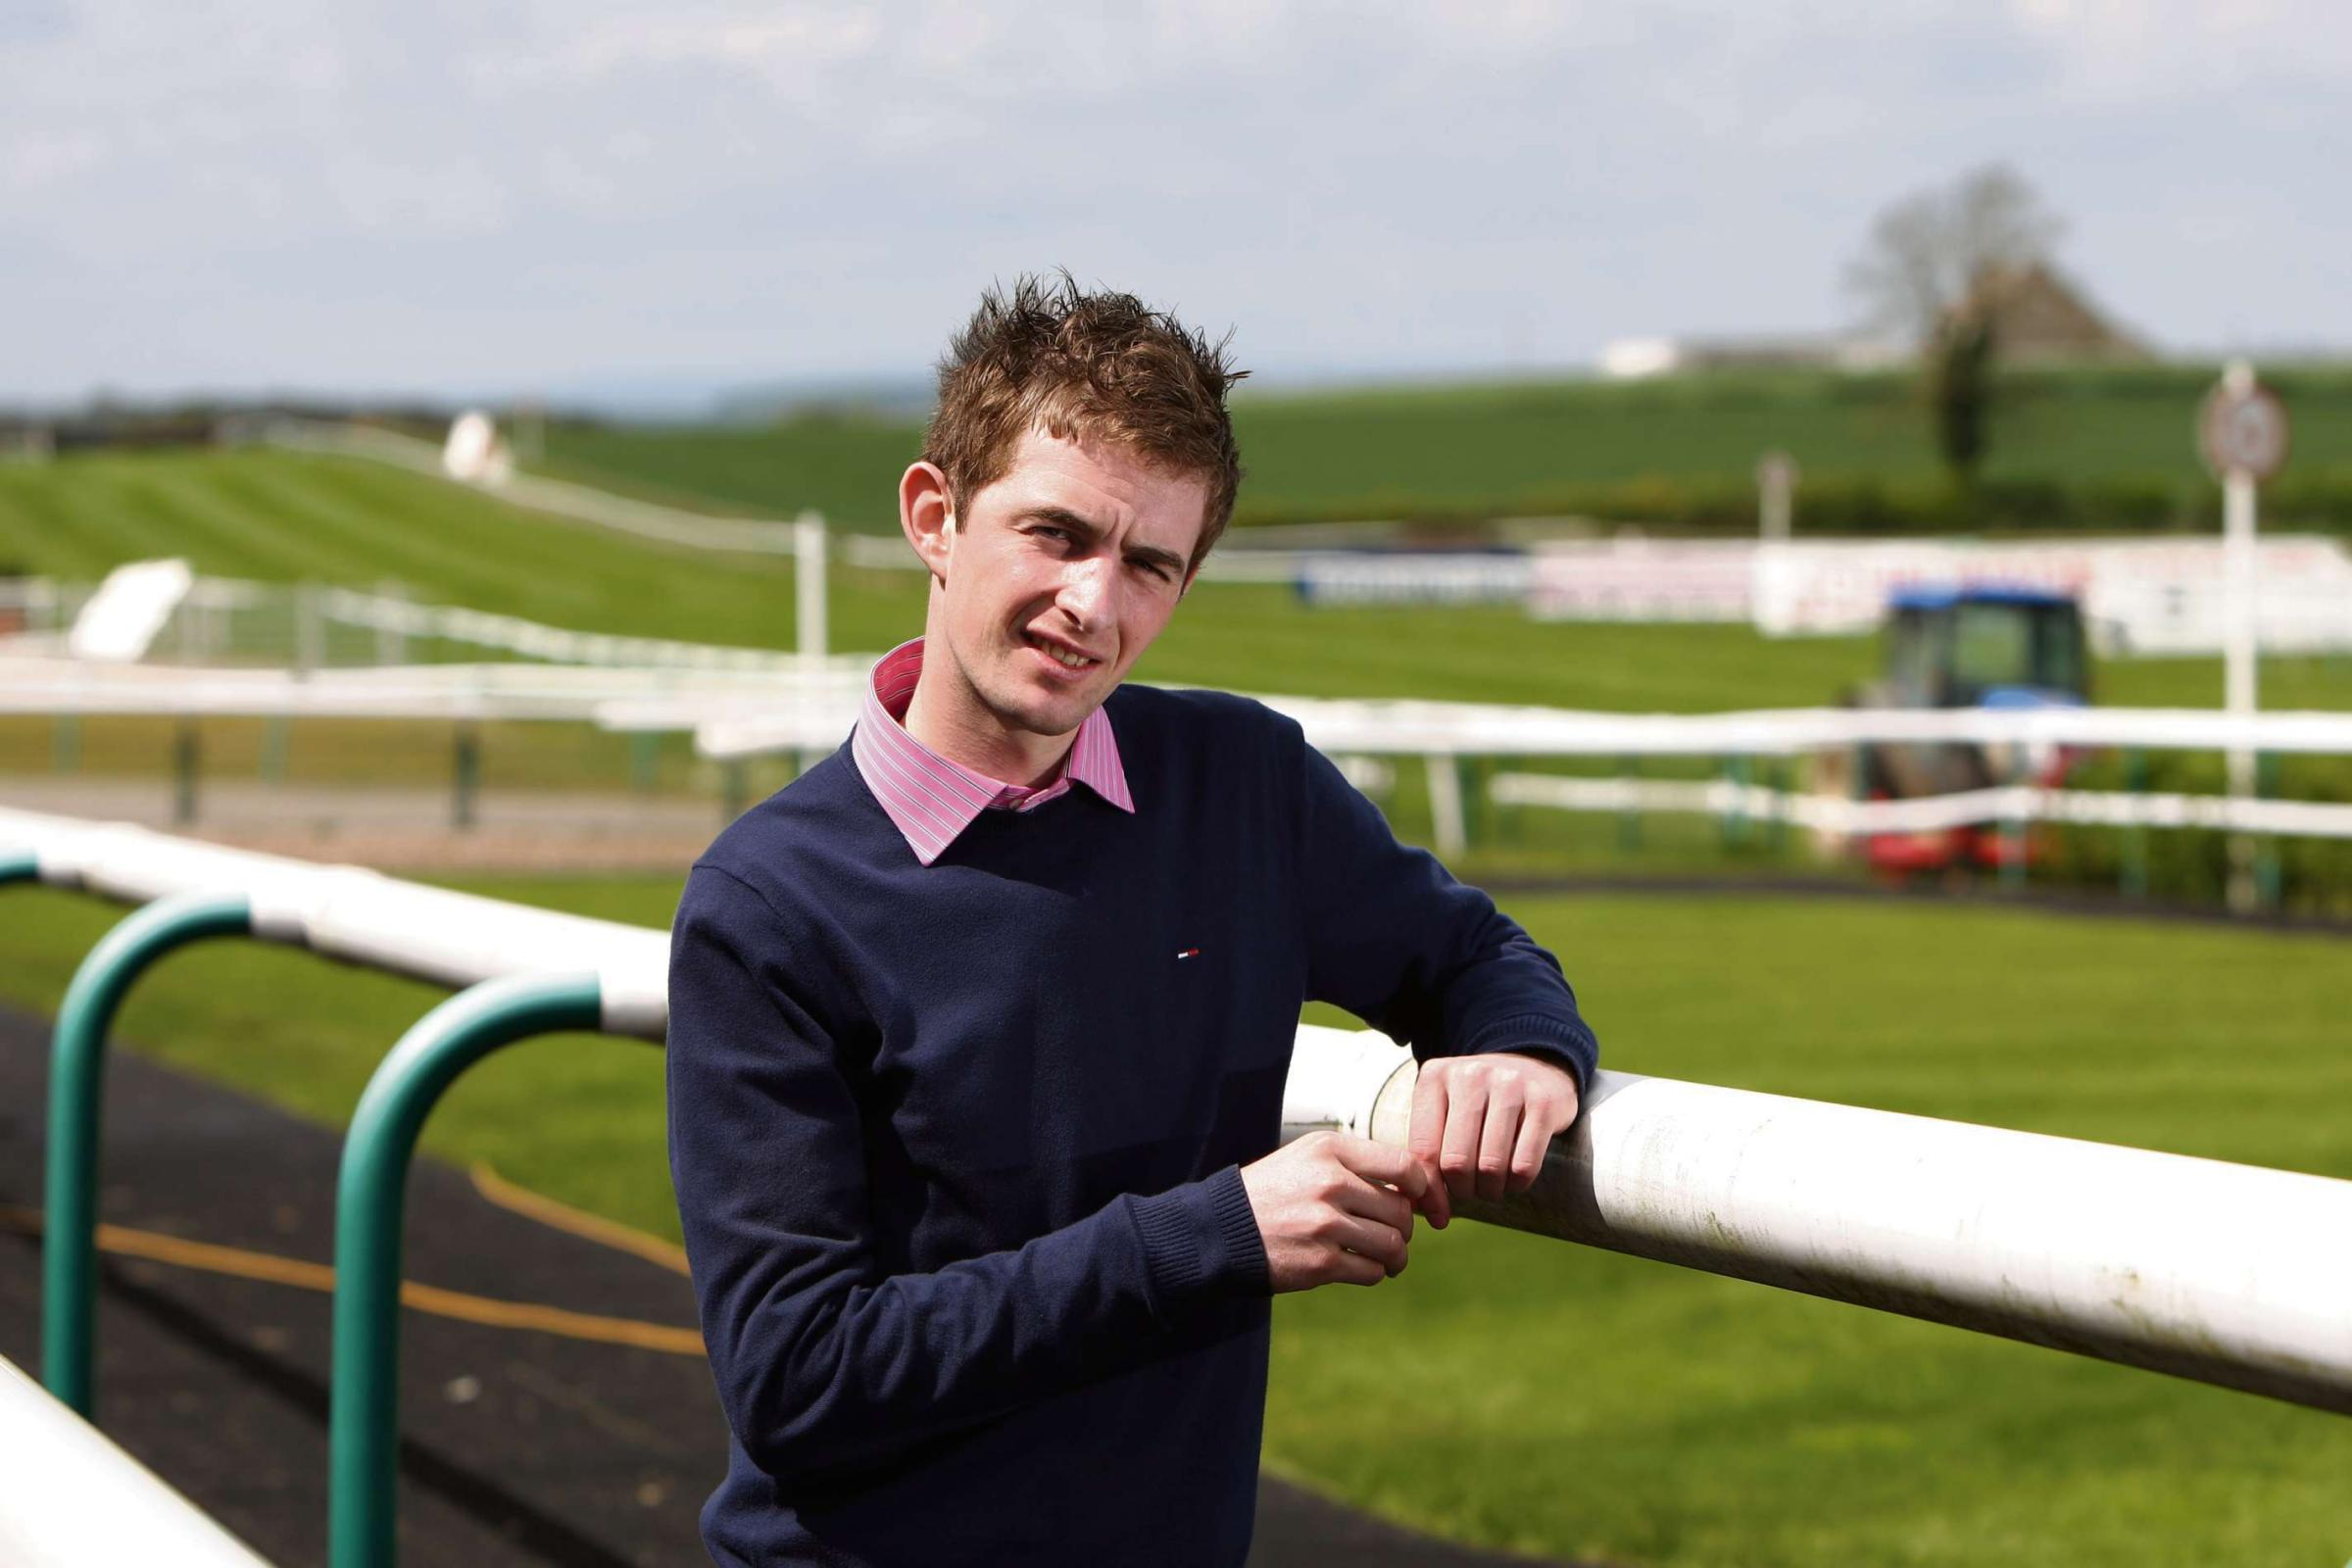 FIGHTING BACK: Jockey Brian Toomey, who is hoping to regain his jockey's licence after recovering from a life-threatening fall at Perth. Picture: TOM BANKS